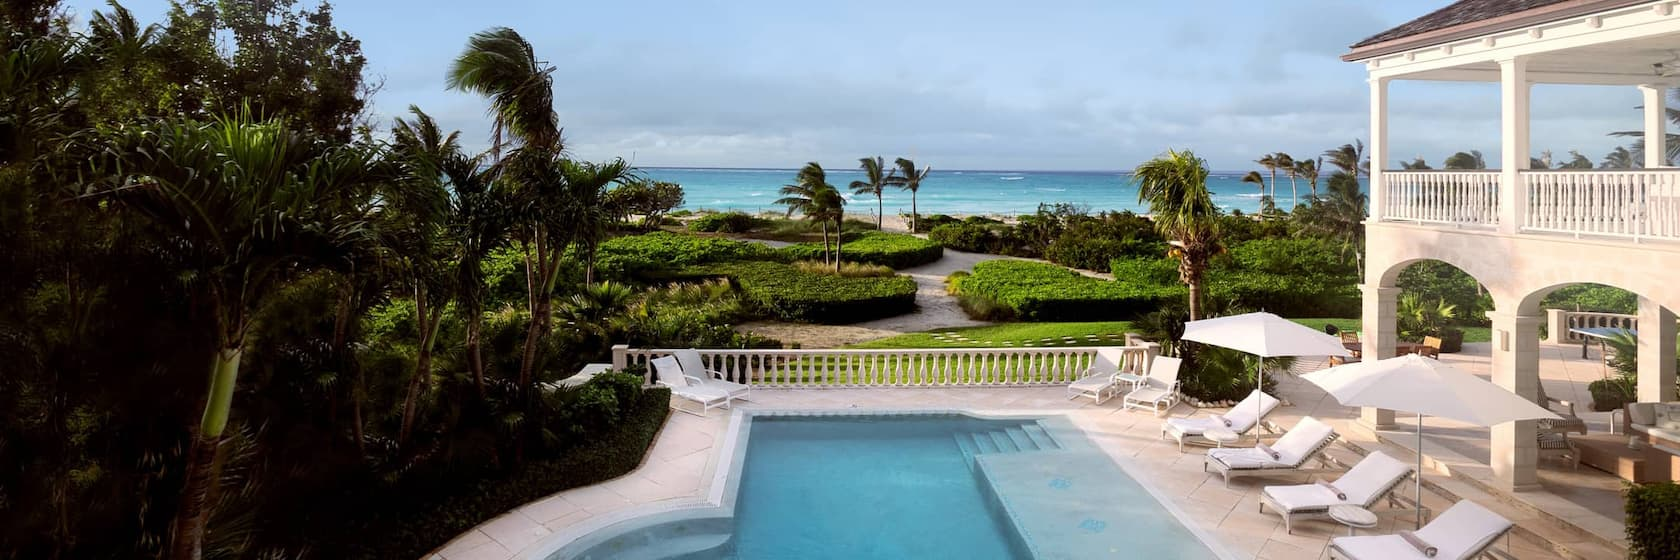 Luxury rentals in Otoki Turks in Caicos